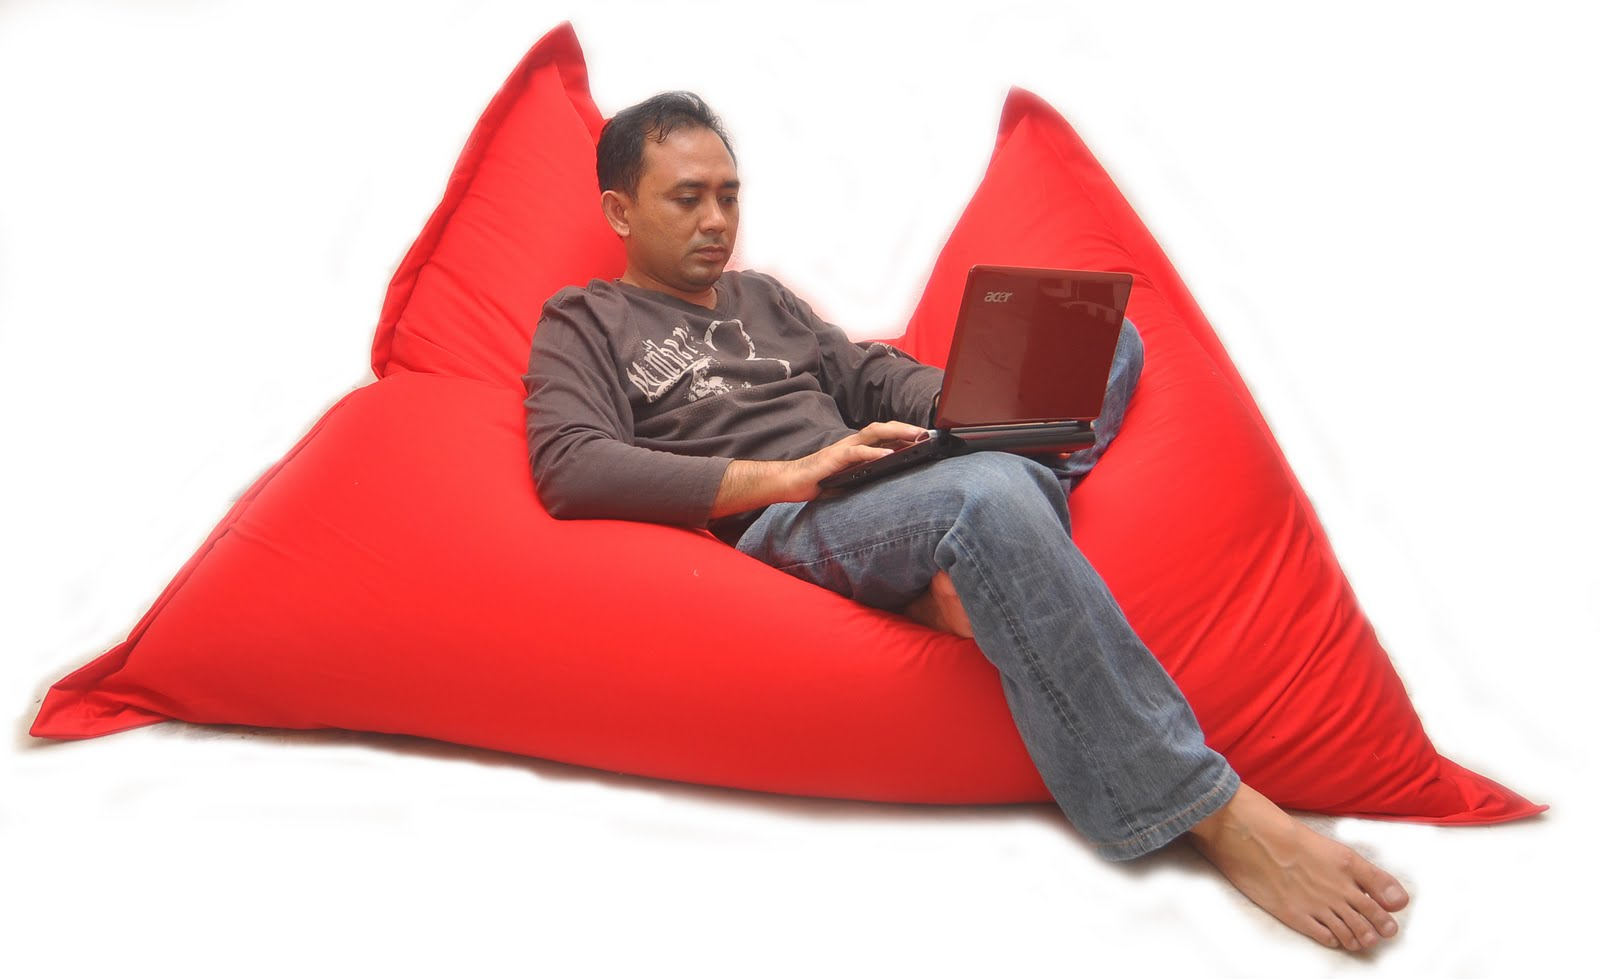 Using Designer Bean Bags For Trendy Home Decor 2015 in addition Best Pc Gaming Chairs additionally fort Research Big Joe Flip Bean Bag Chair FR1339 moreover Maximo Rieras Hippopotamus Sofa Brings The Power And Tenacity Of The River Horse To Your Living Room further Best Plastic Stack Stools. on the best bean bag chair